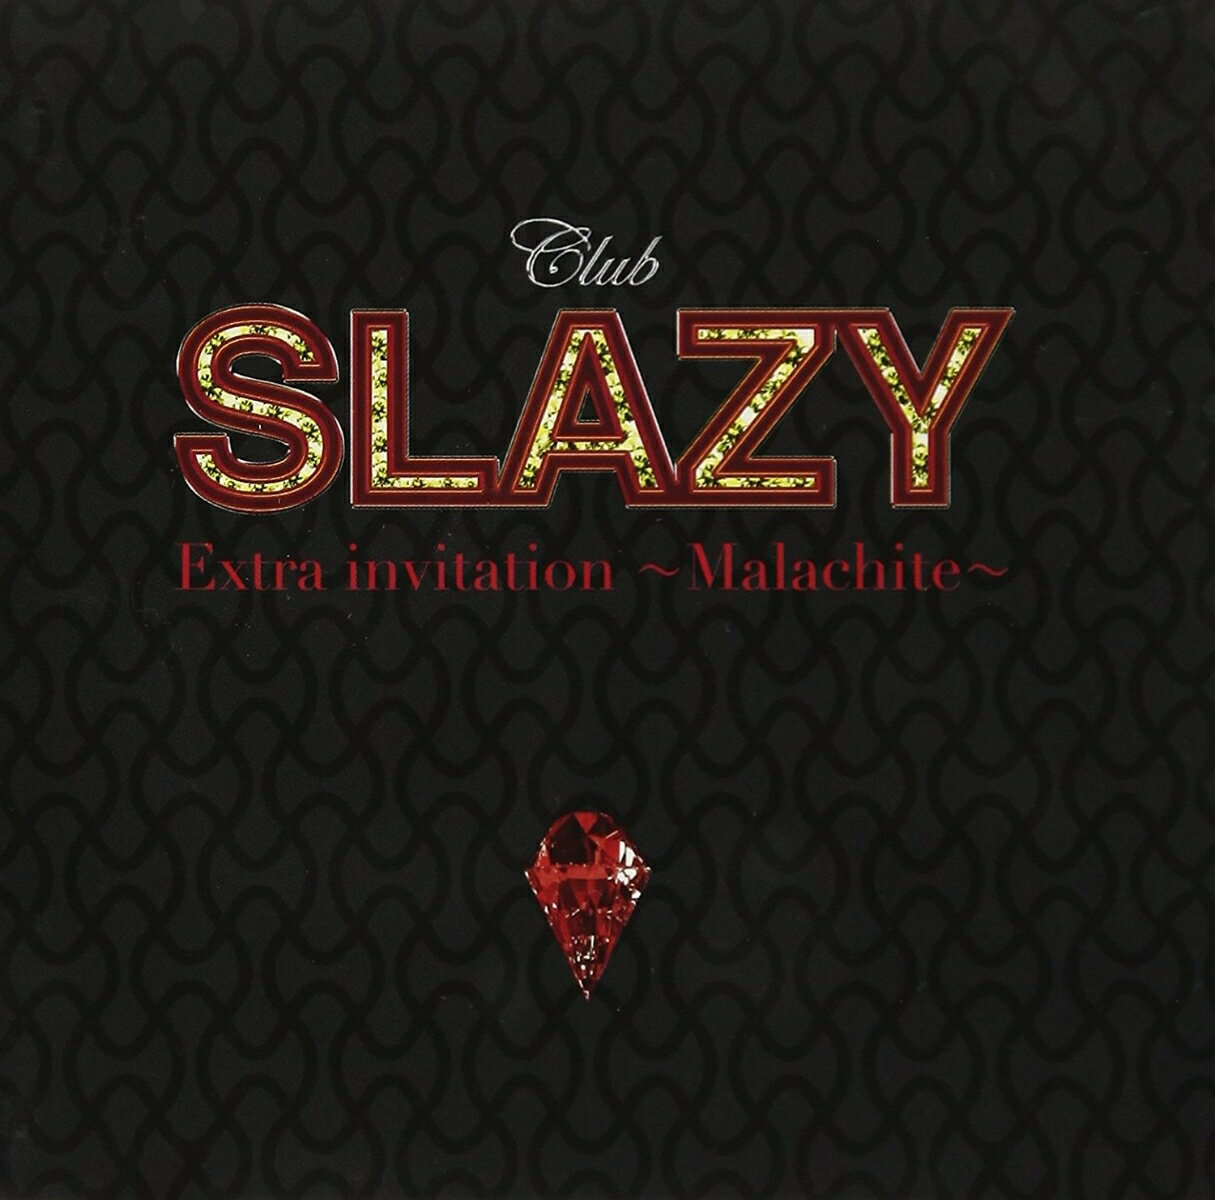 Club SLAZY Extra invitation 〜malachite〜CD [ TVサントラ ]